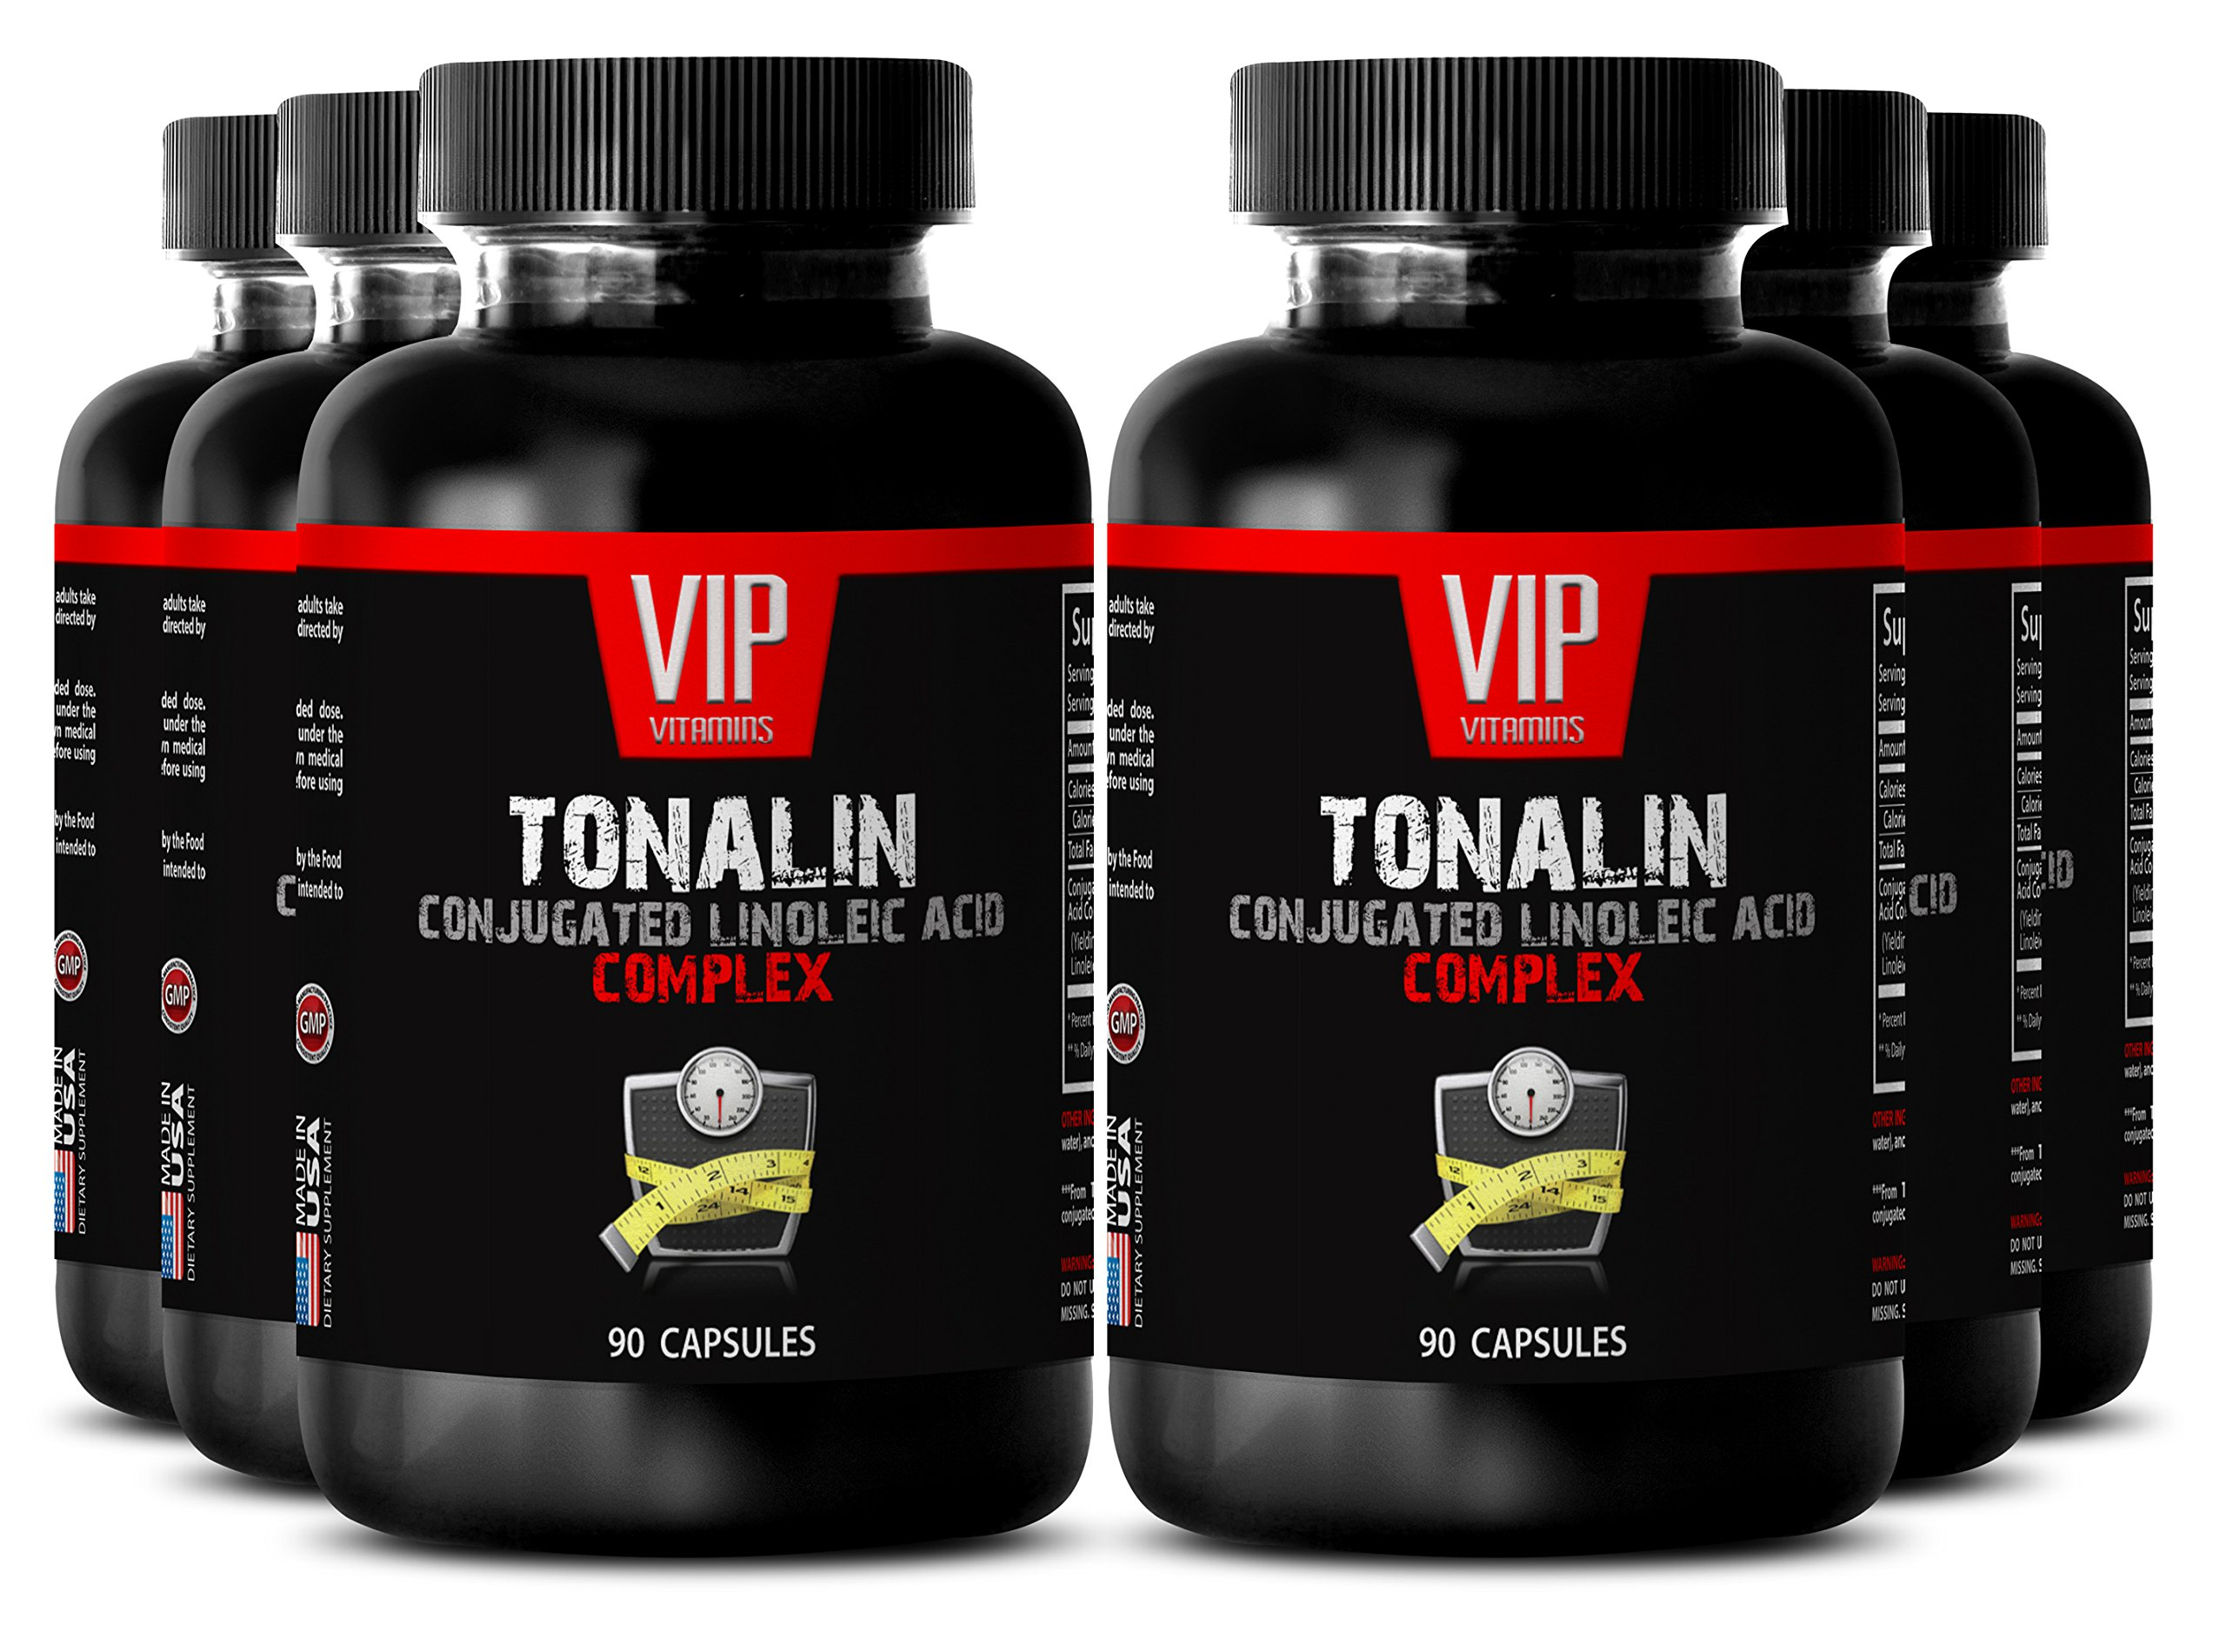 Conjugated linoleic acid oil - TONALIN Conjugated Linoleic Acid Complex - Strength booster - 6 bottles 270 Capsules